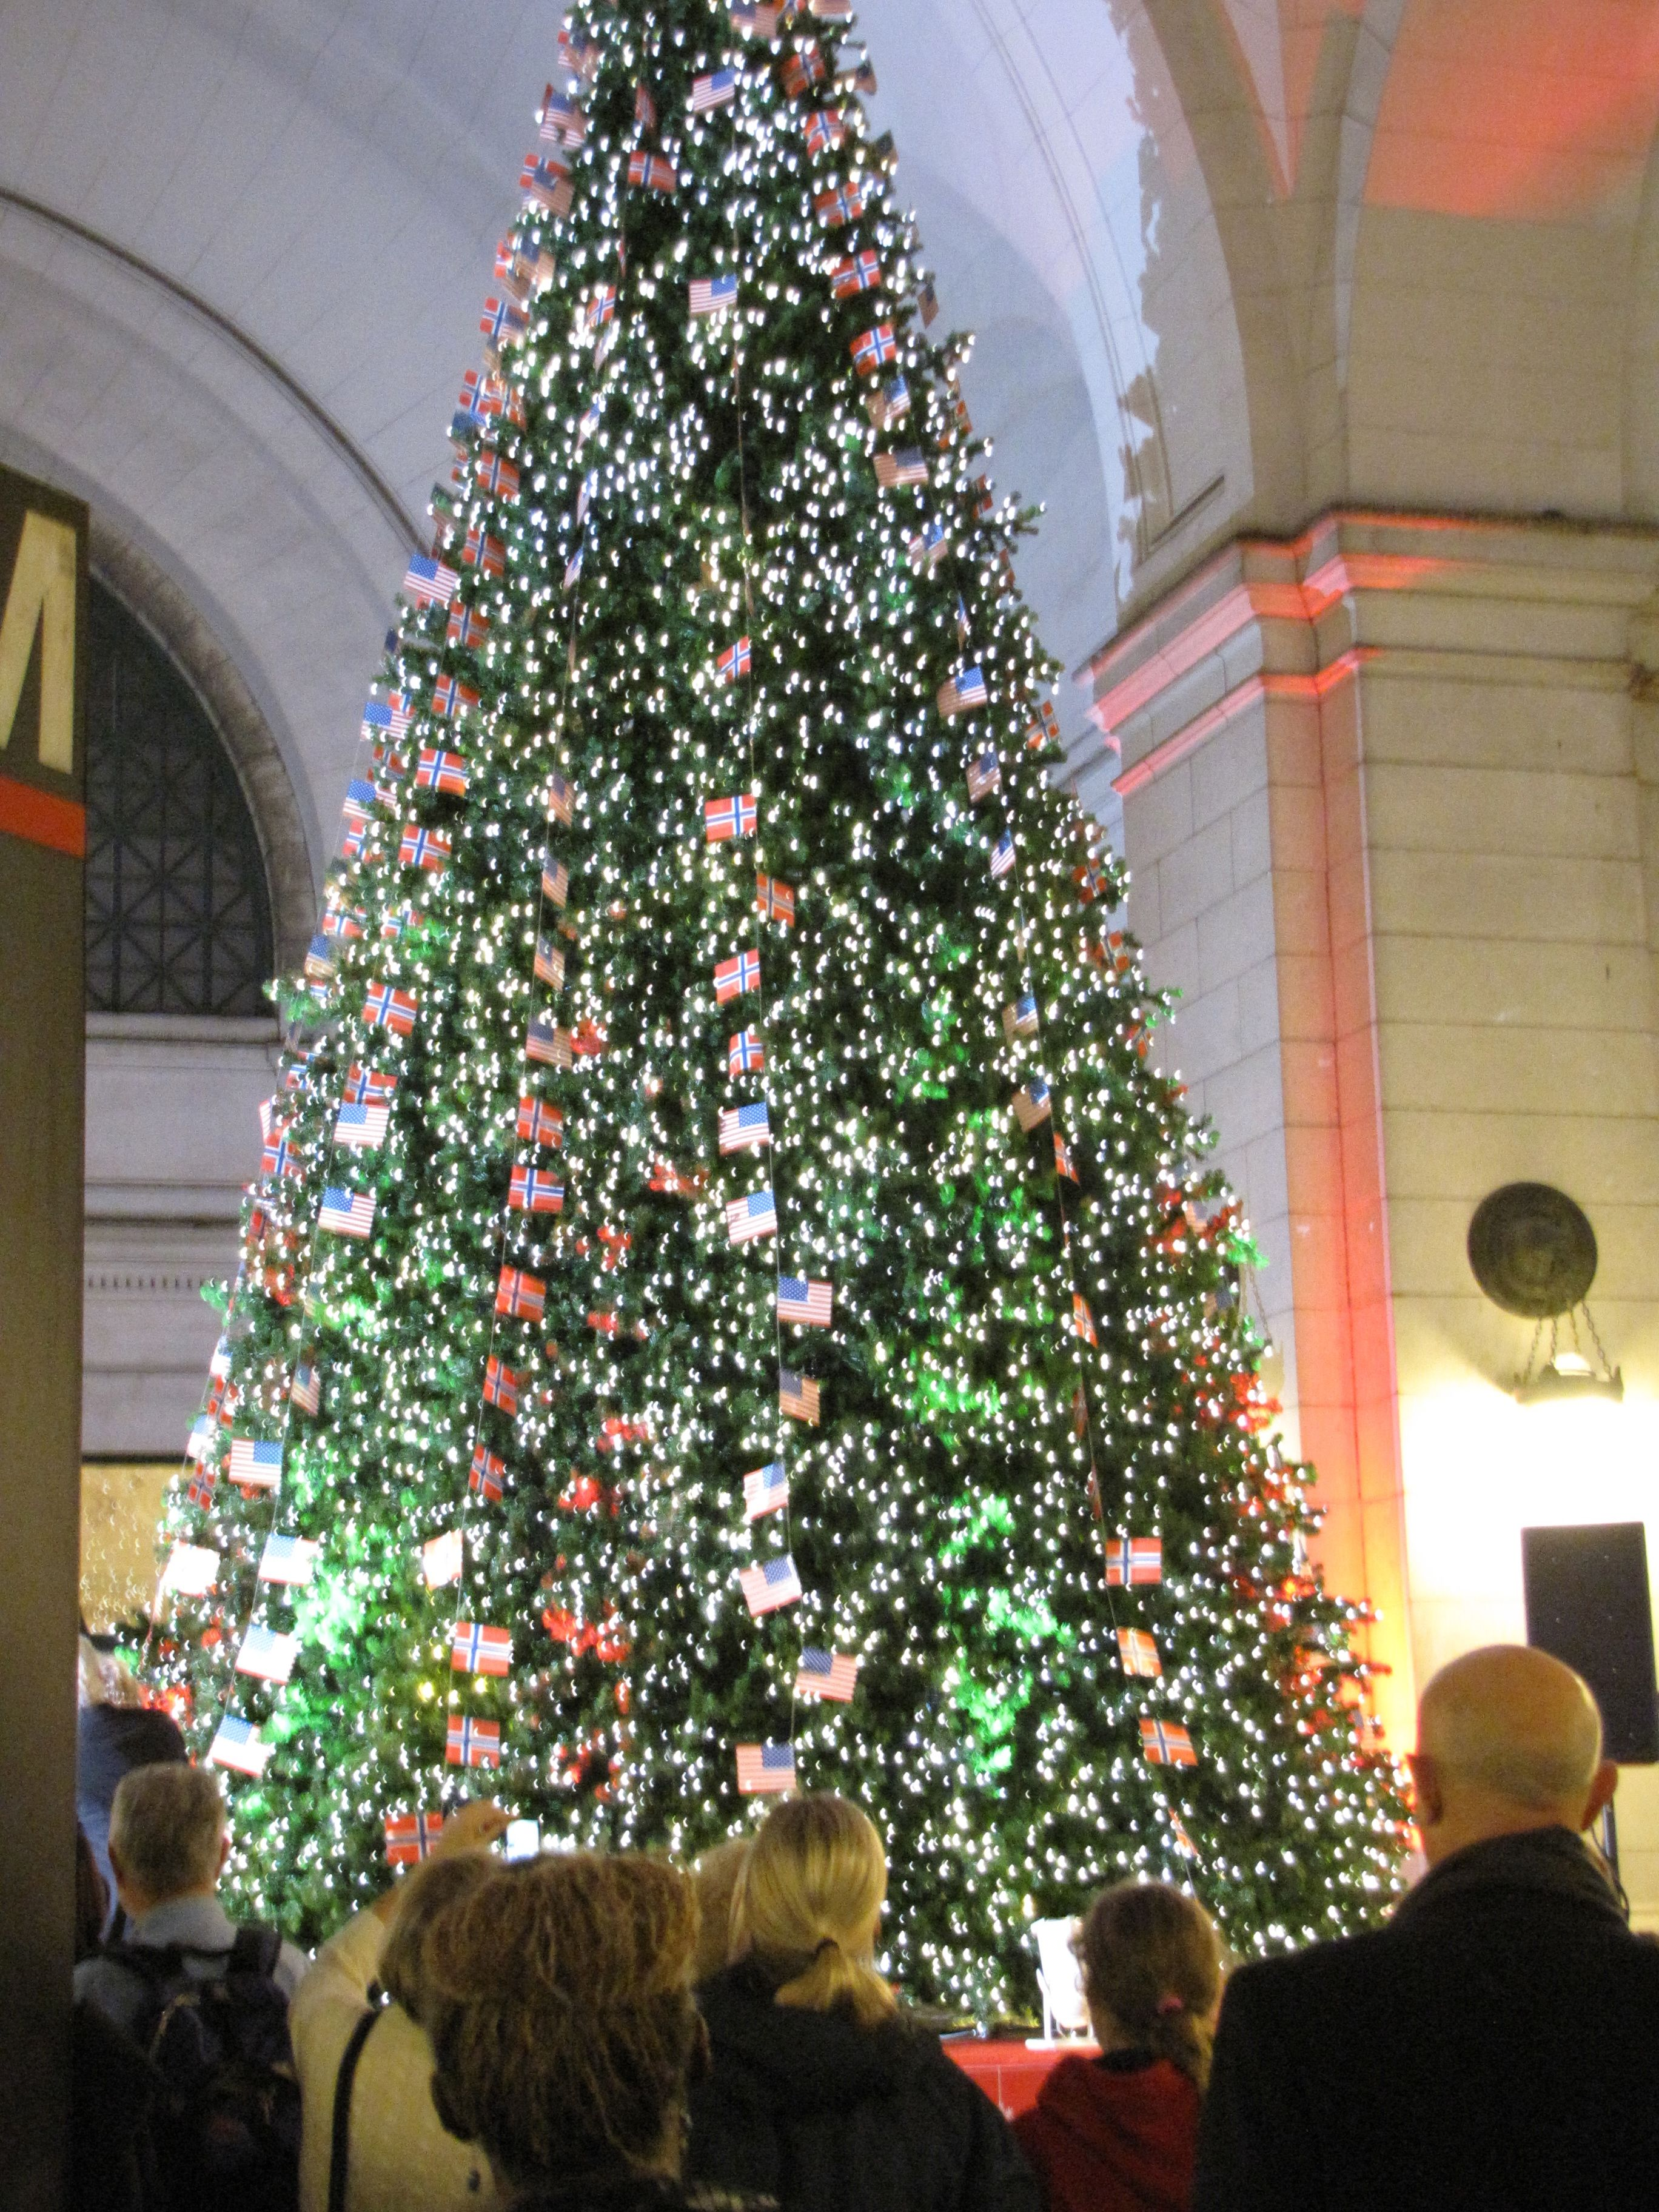 Norwegian Christmas Tree at Union Station, DC | Norway! | Pinterest ...